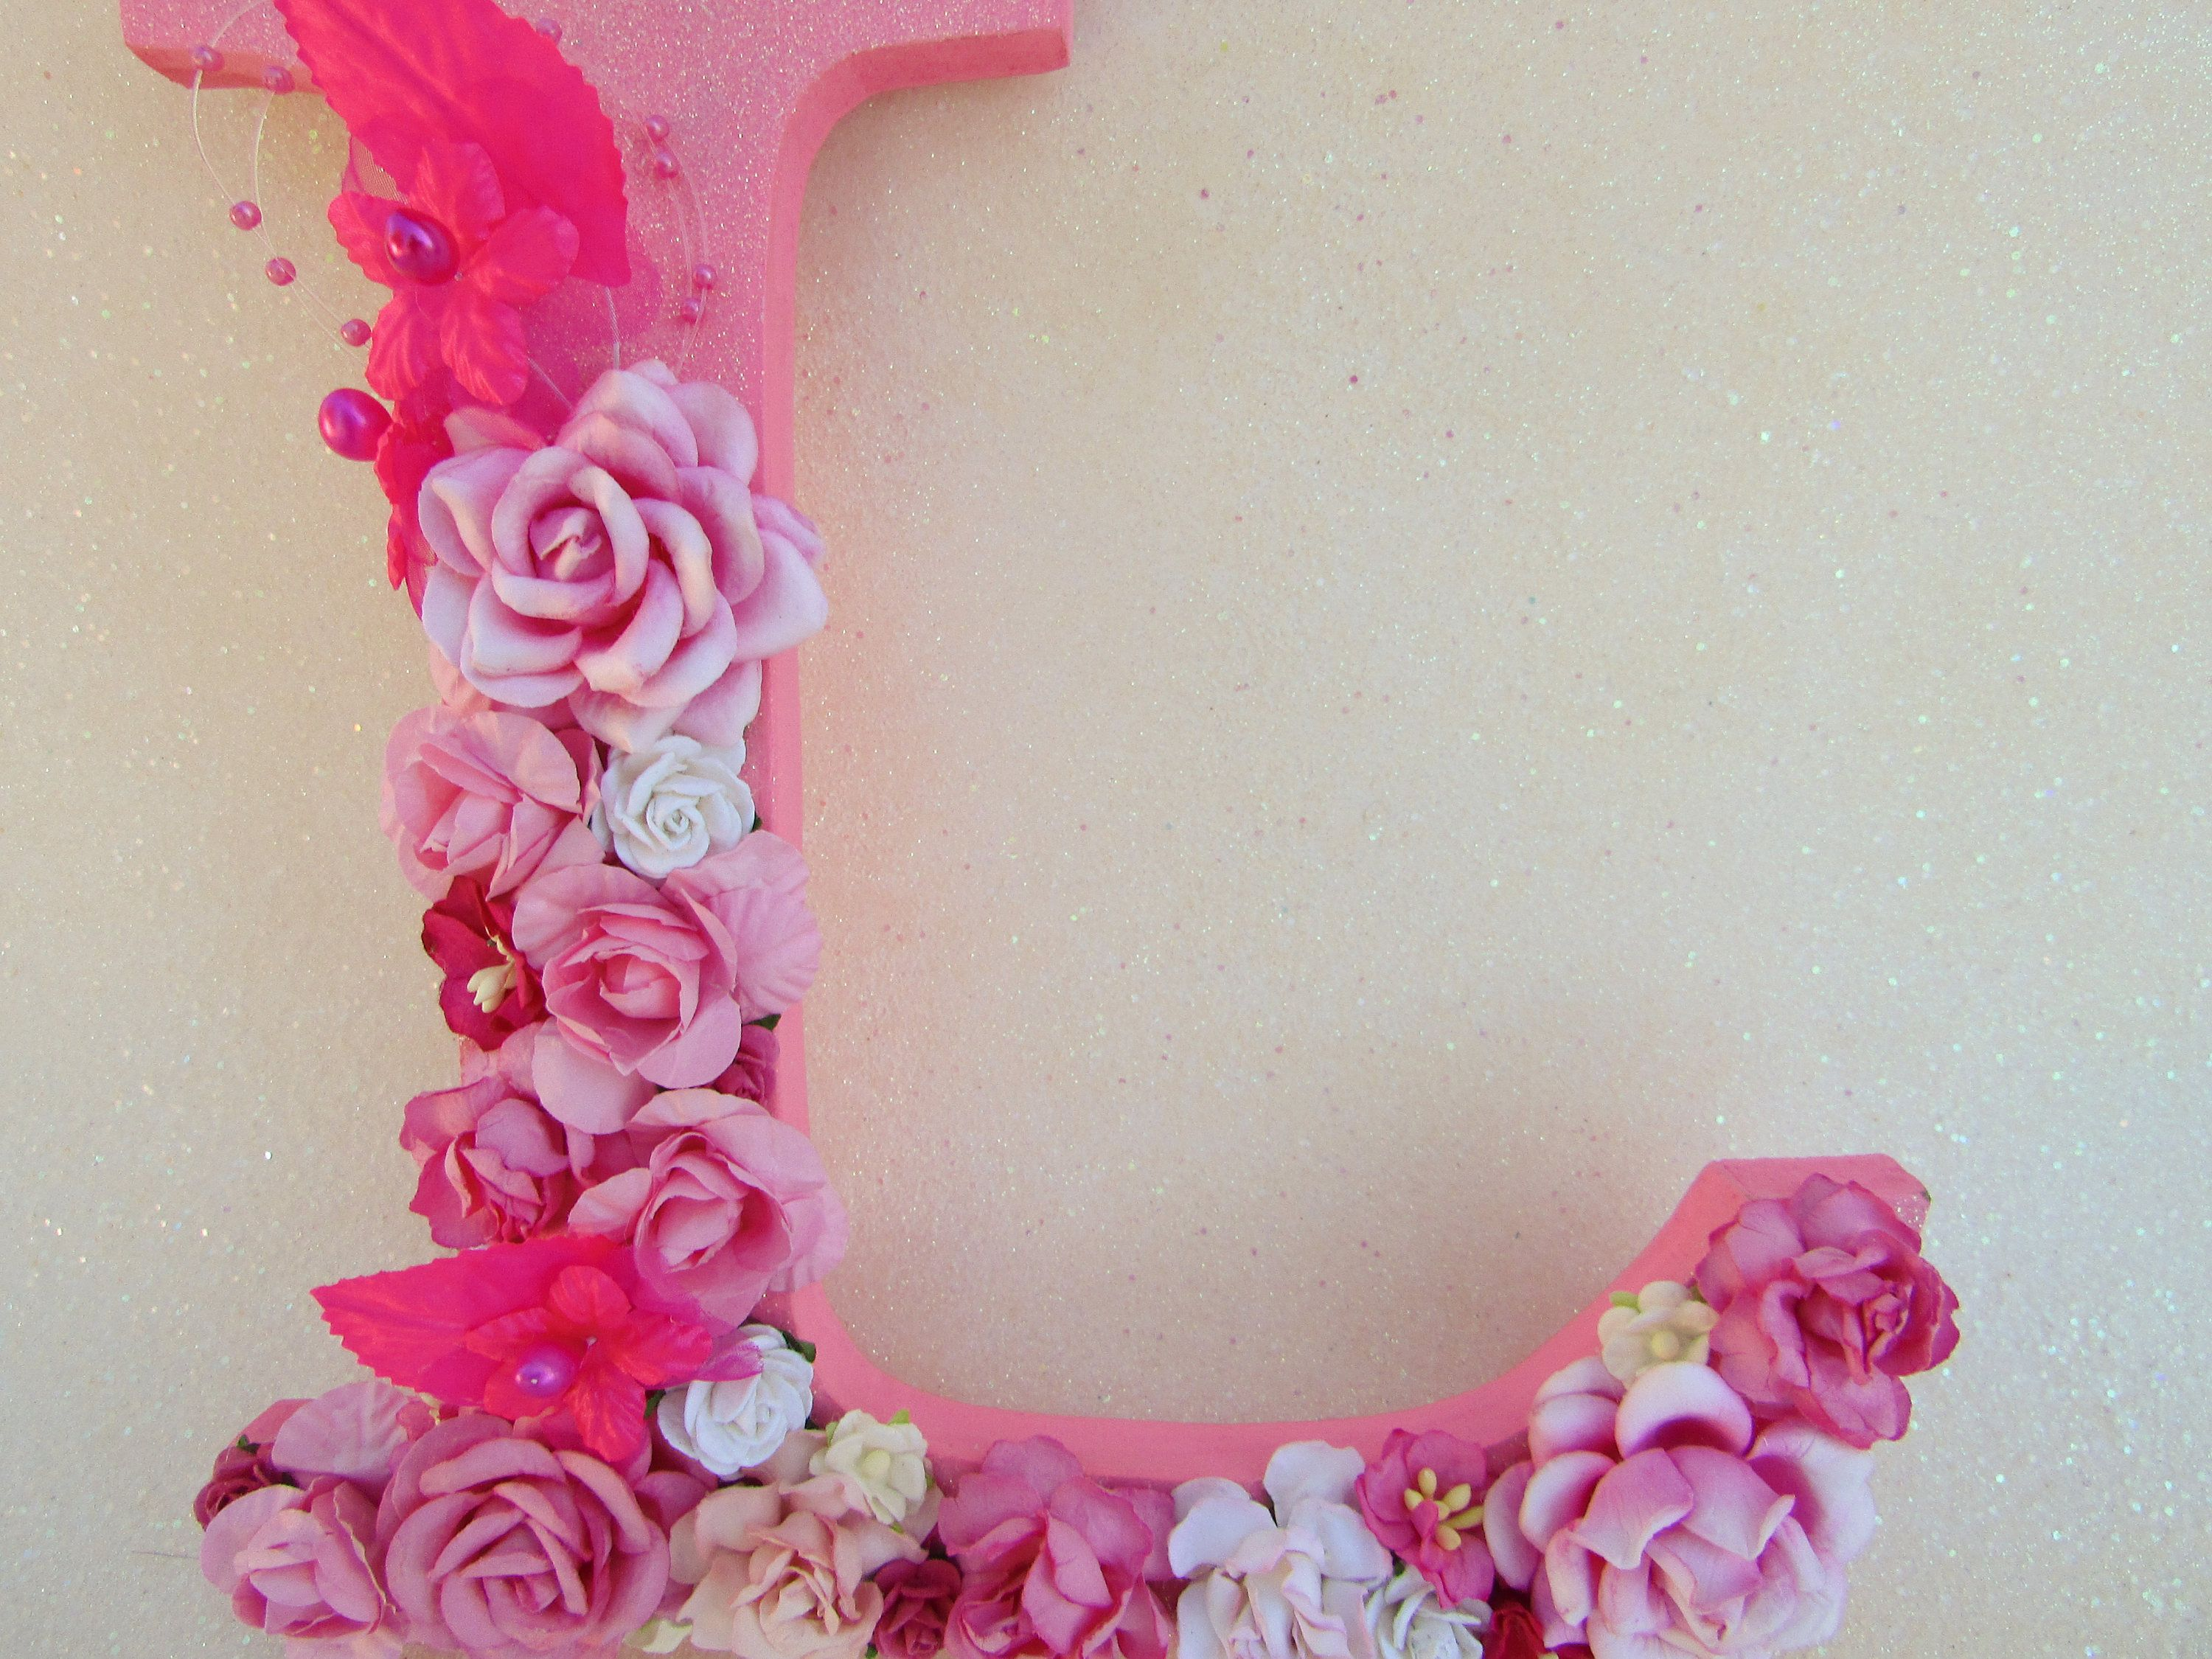 Nursery wall decor pink flower letter l floral name letter nursery wall decor pink flower letter l floral name letter flower wall decor amipublicfo Choice Image